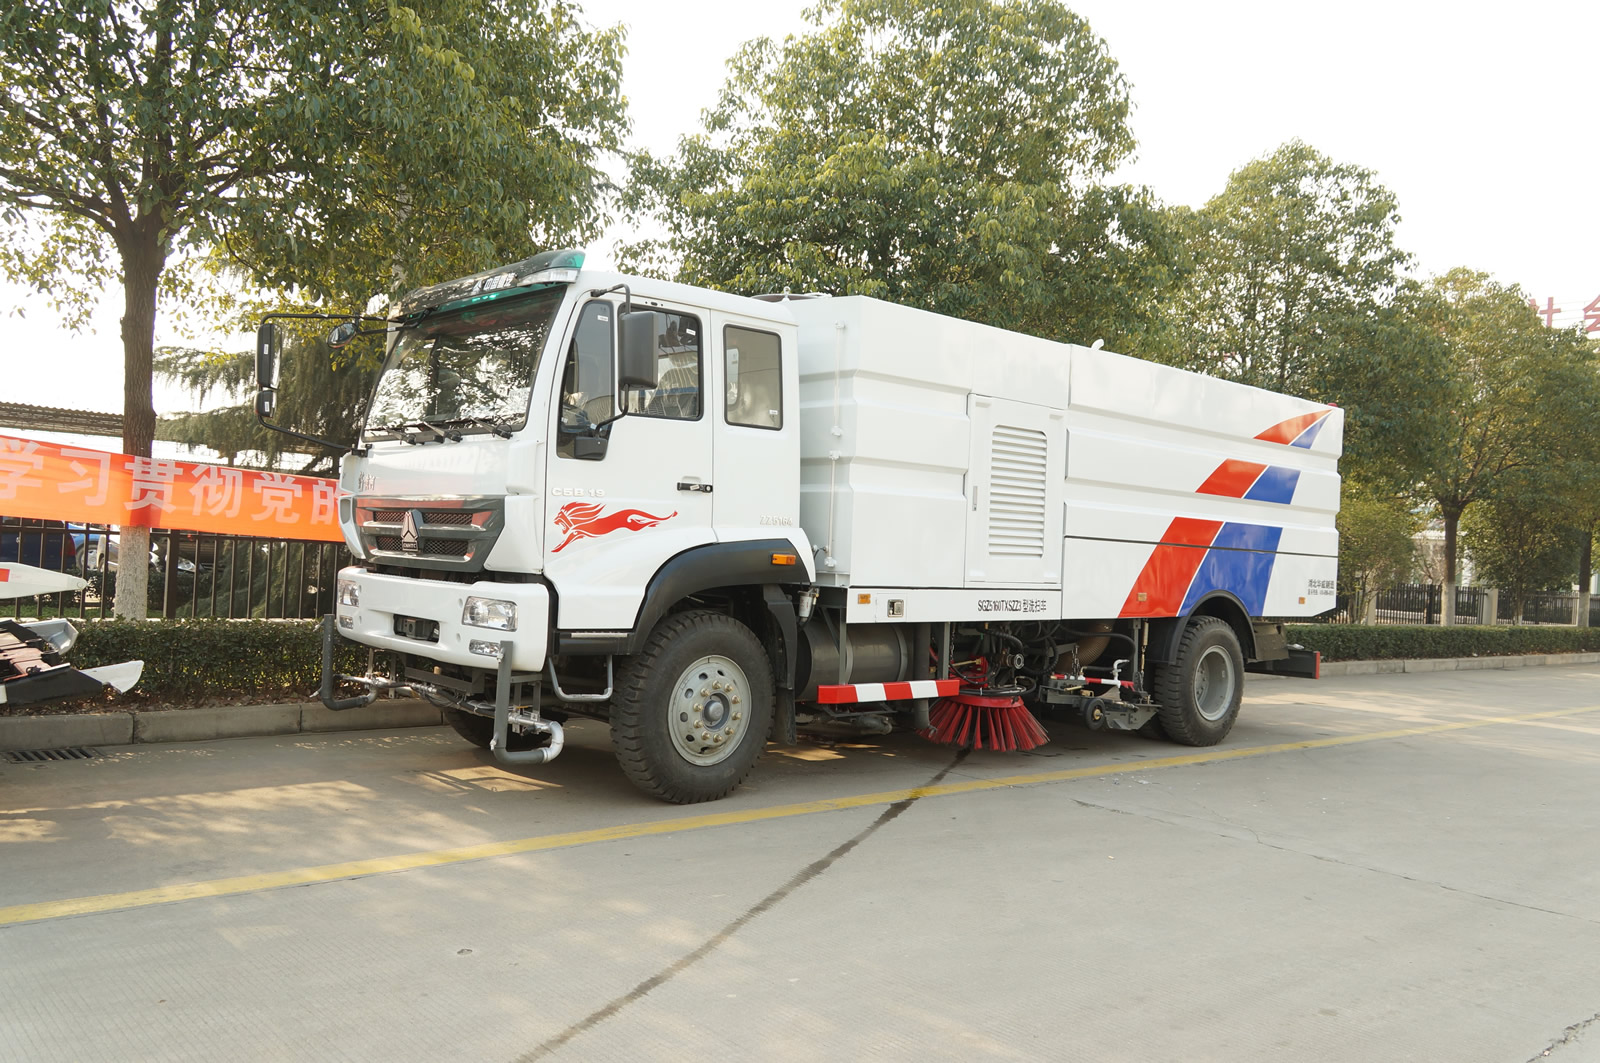 Cleaner truck